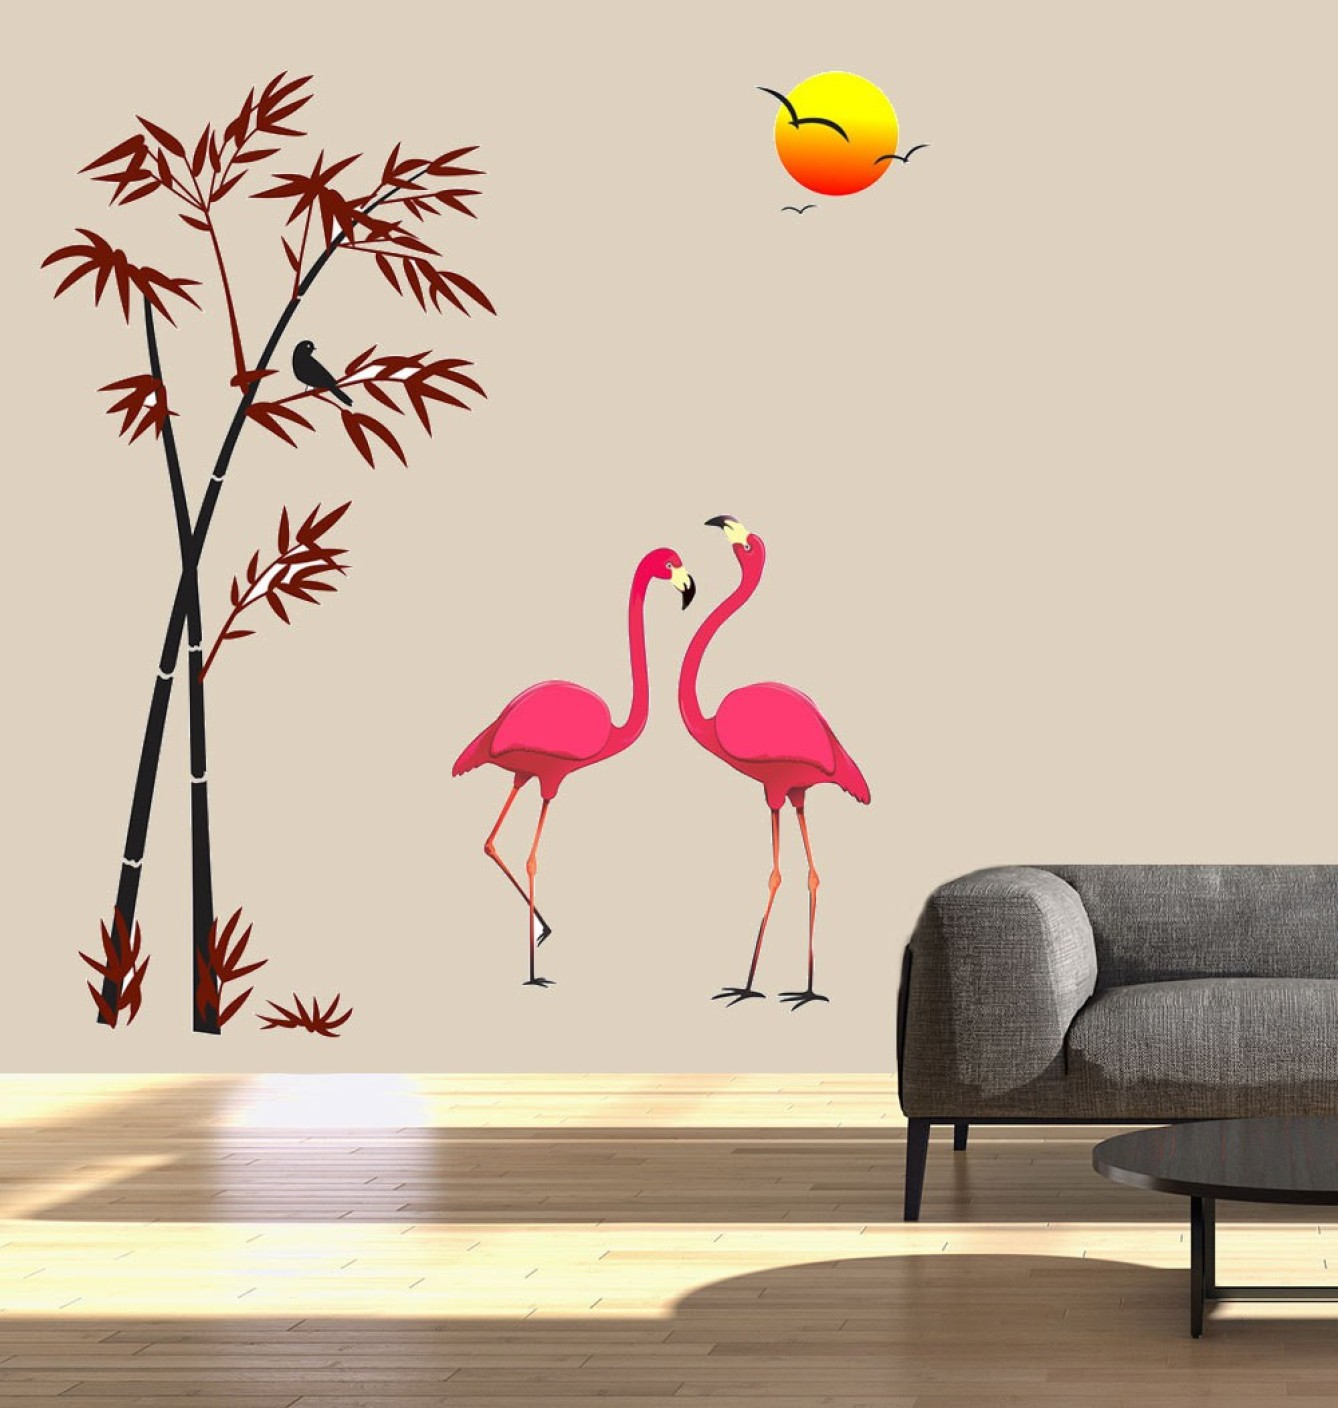 Wallpaper Decal: New Way Decals Wall Sticker Fantasy Wallpaper Price In